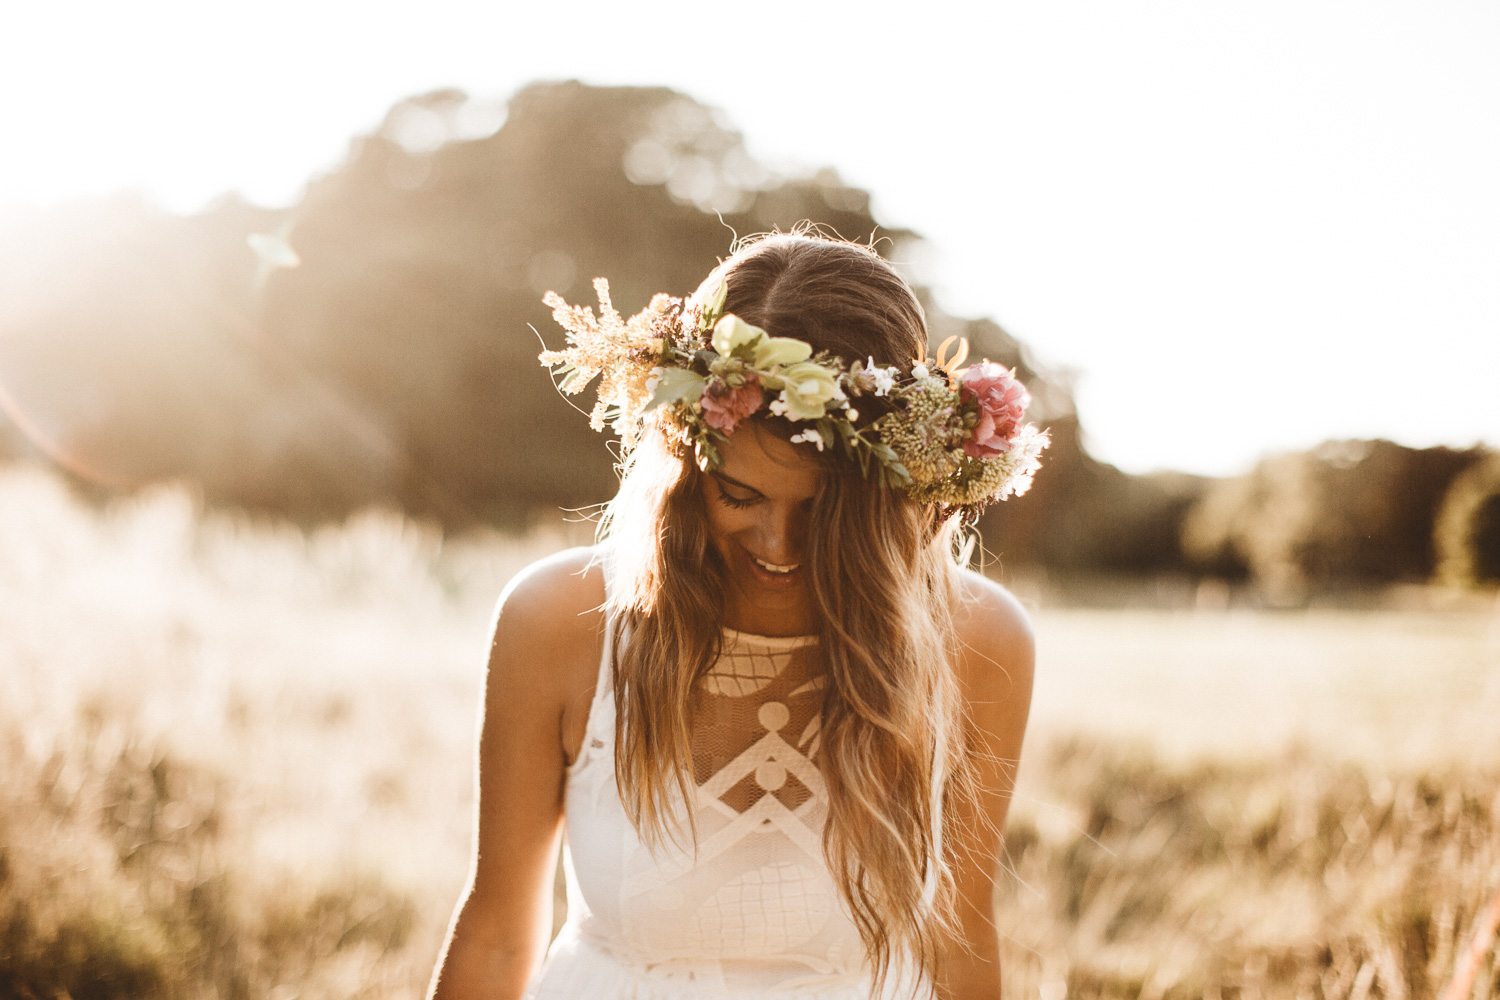 Anthropologie-flower-crown-ocean-edge-resort 01.jpg